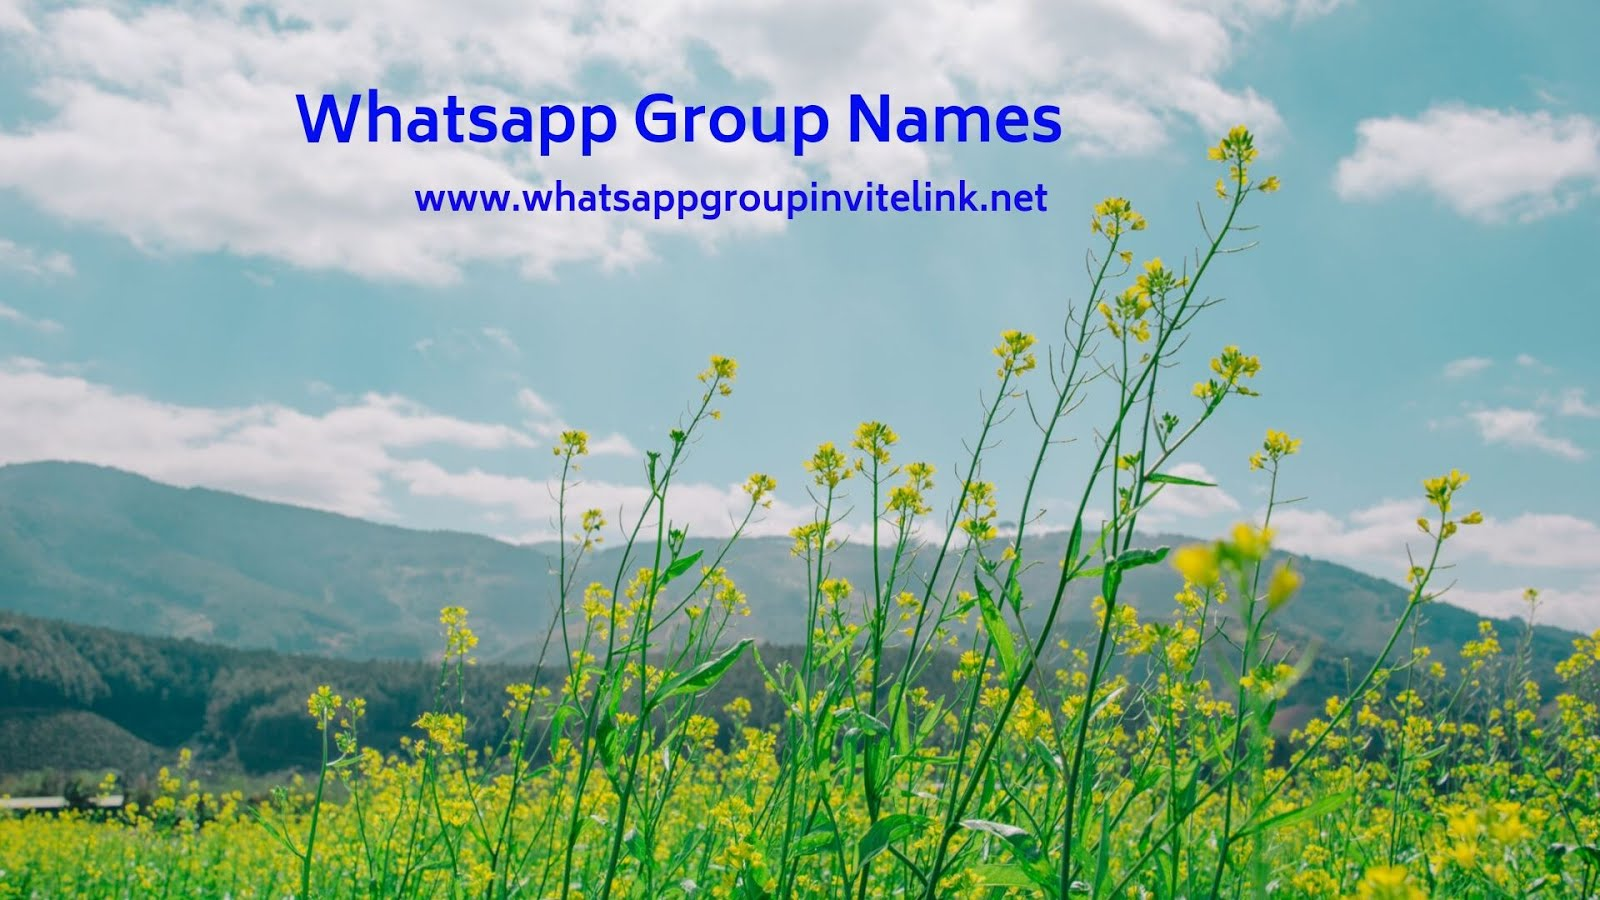 Whatsapp Group Invite Links: Whatsapp Group Names